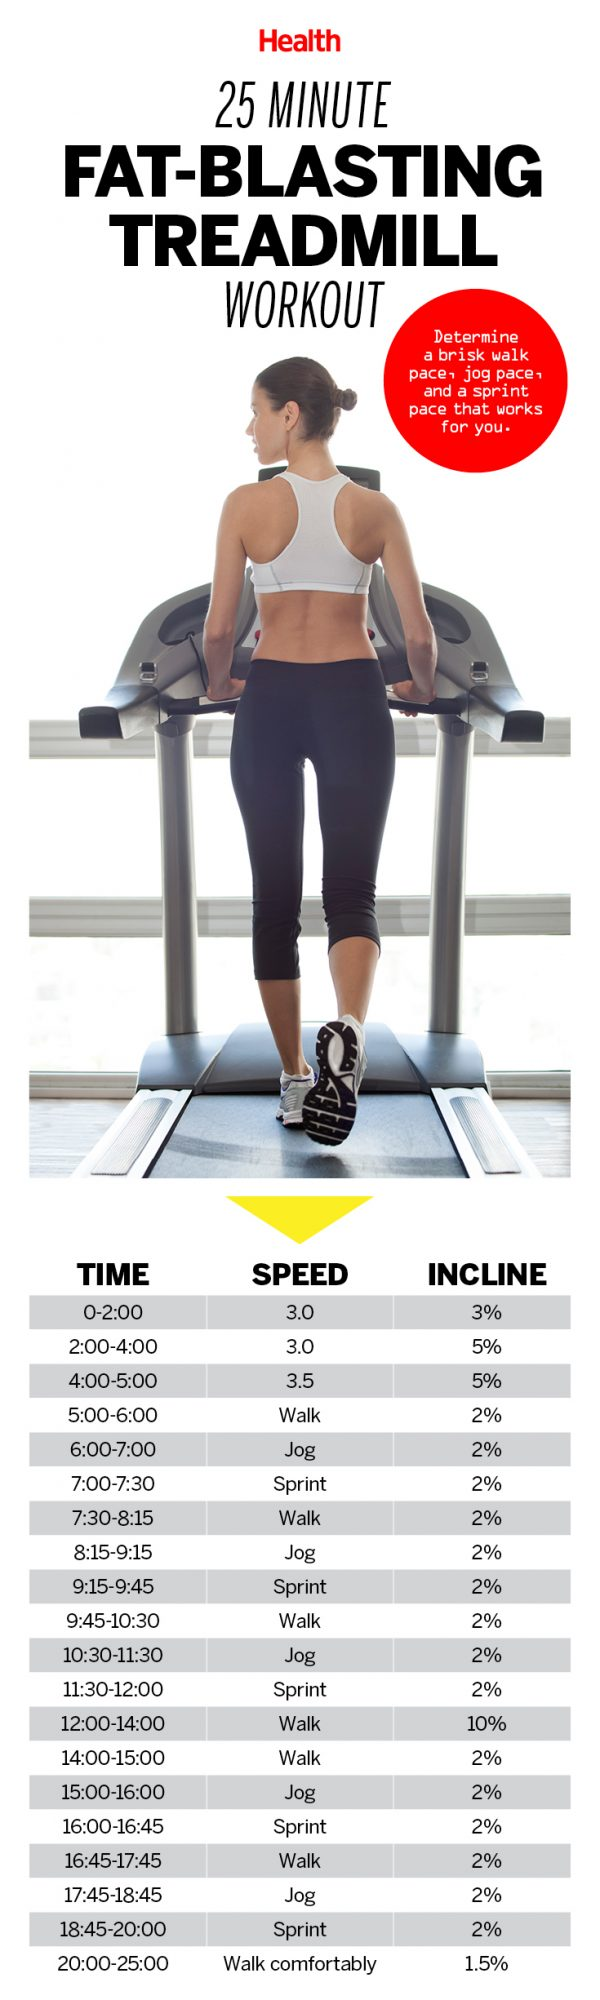 1118_25-minute-treadmill-workout.jpg